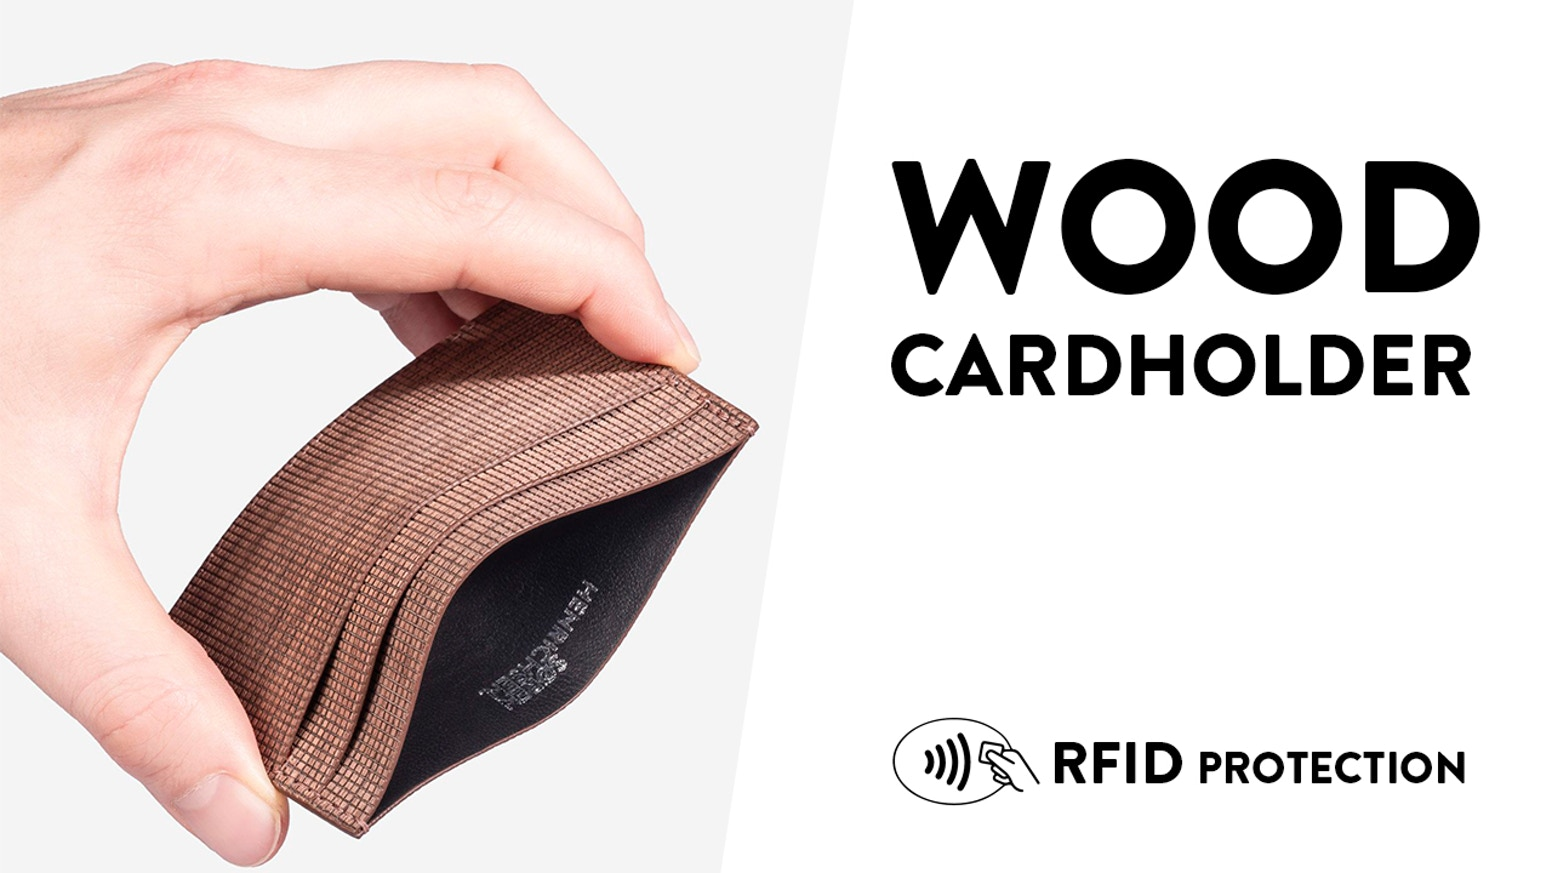 VIGGO Is A Cardholder Made Out Of Italian Wood It Has An Embedded RDIF Data Protection To Keep Your Credit Cards And Id Safe